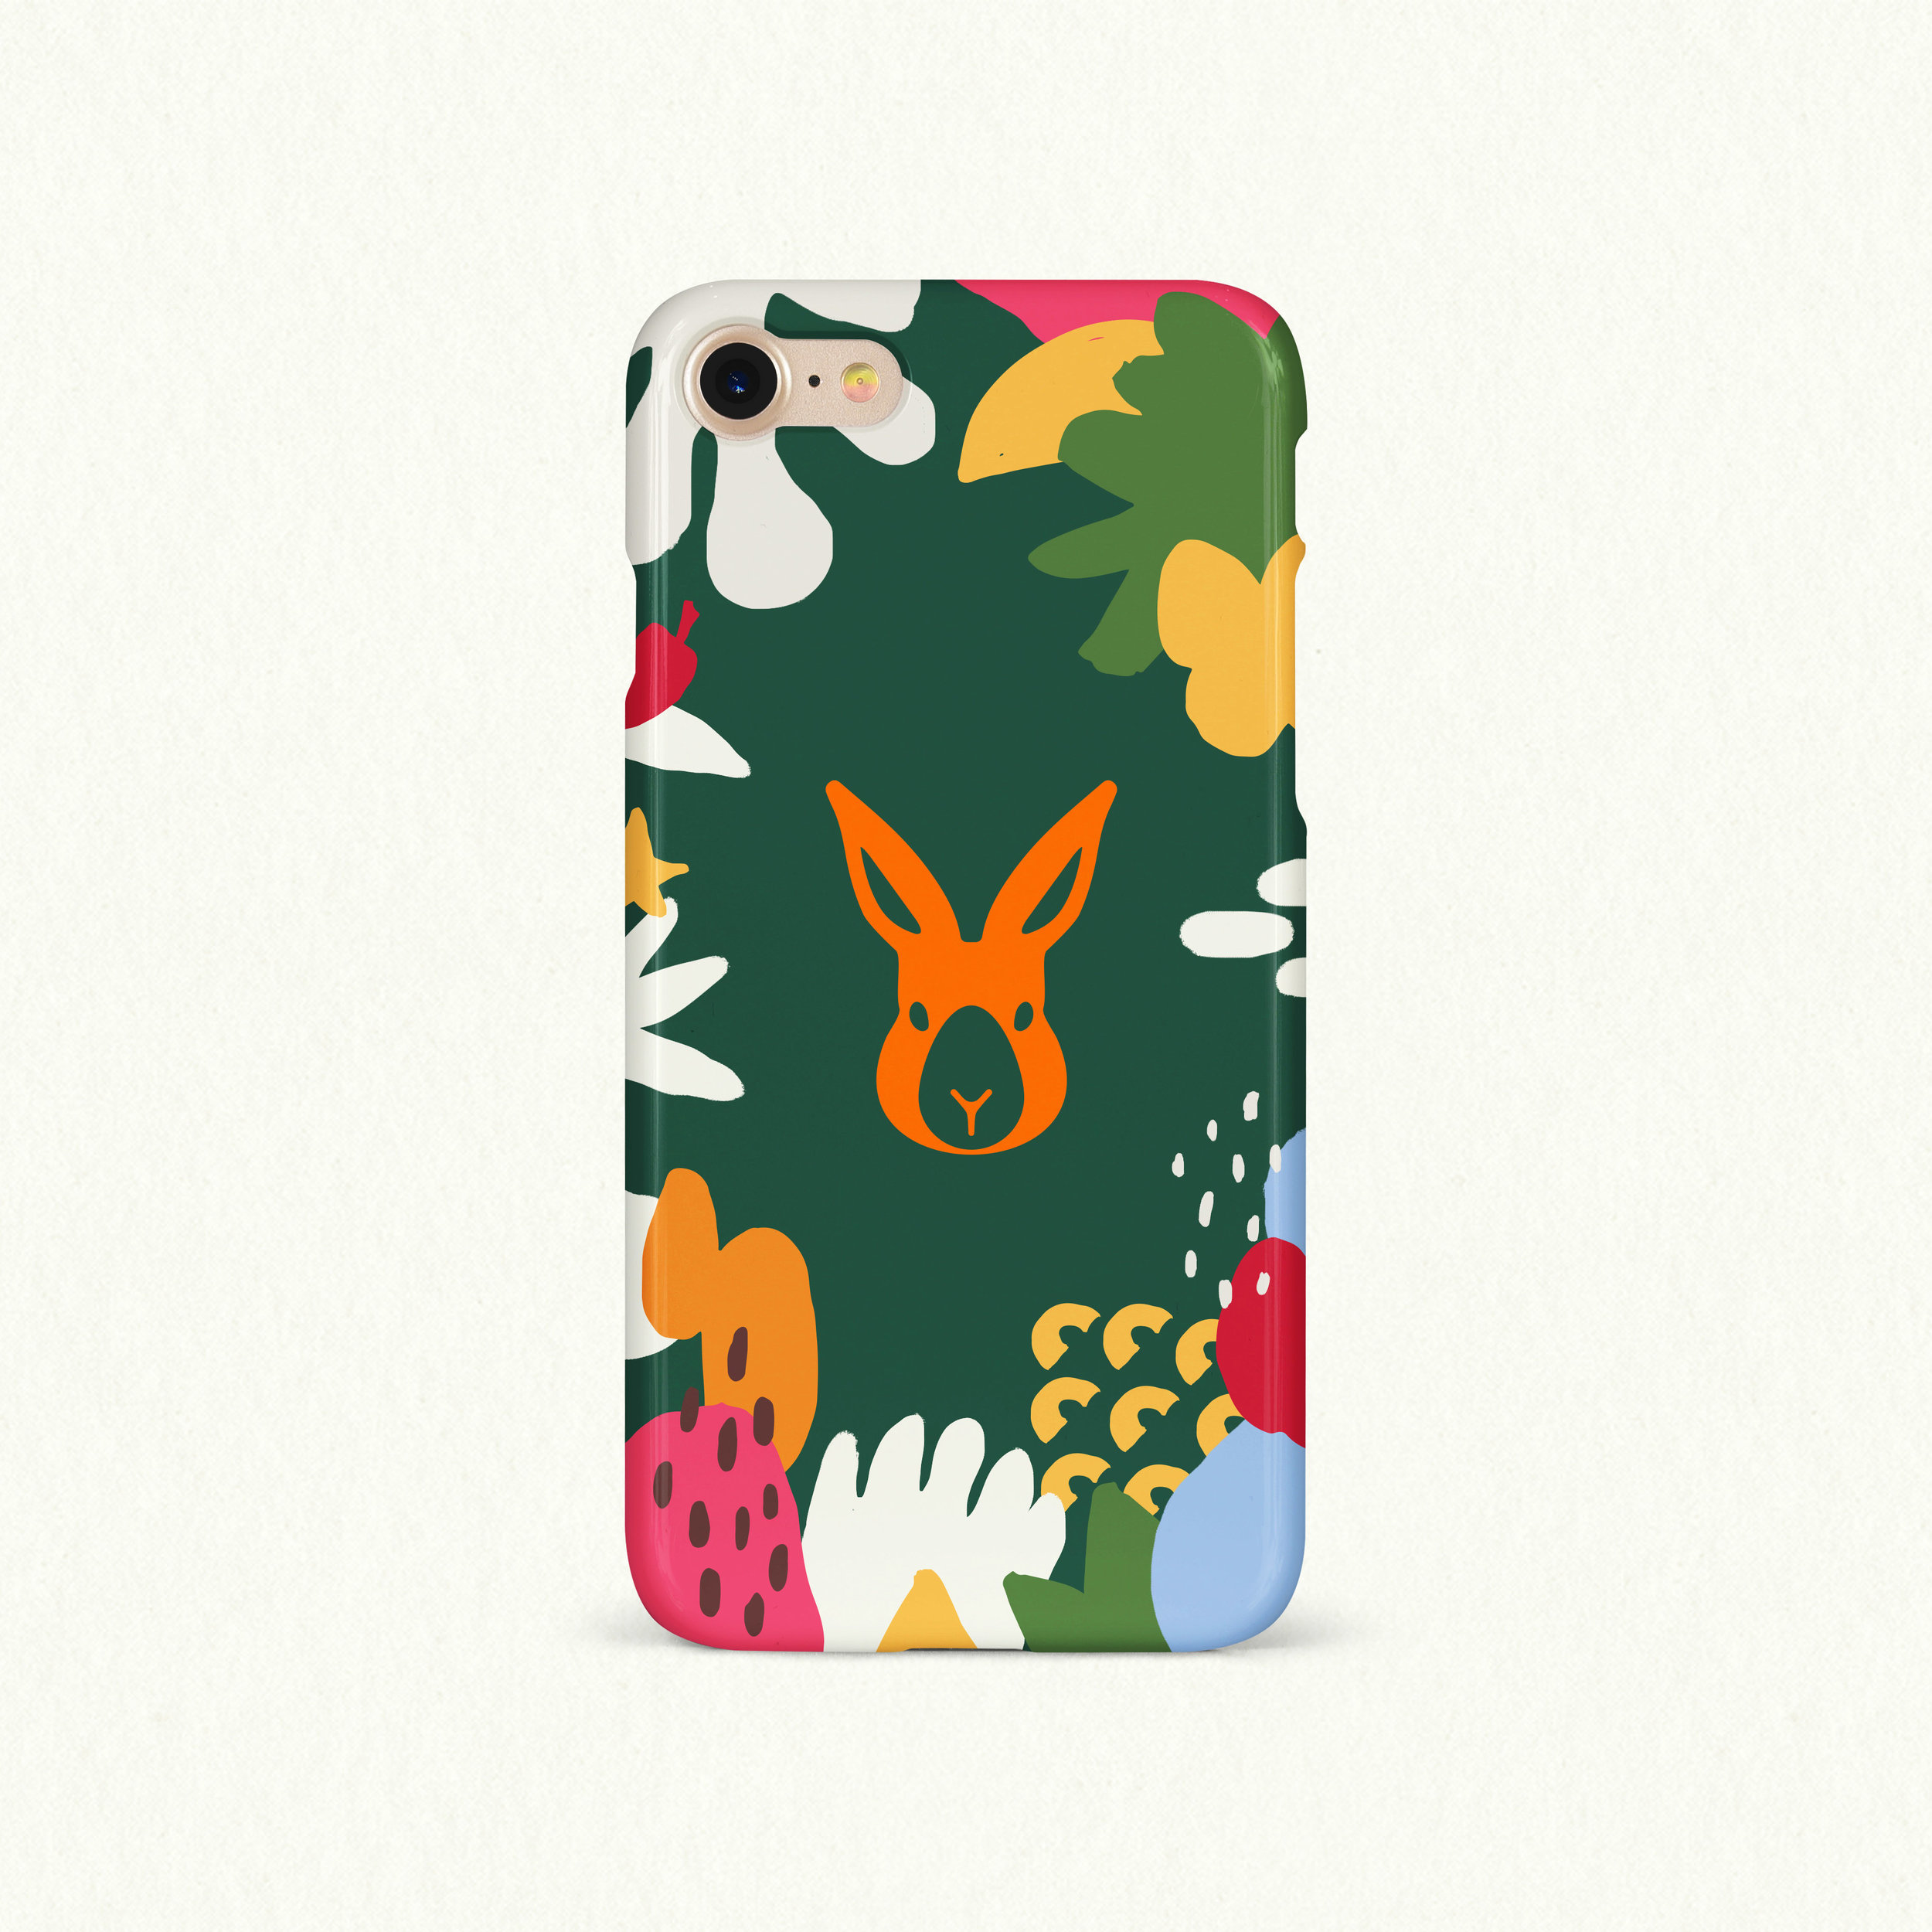 phonecase_pattern_diff_background.jpg